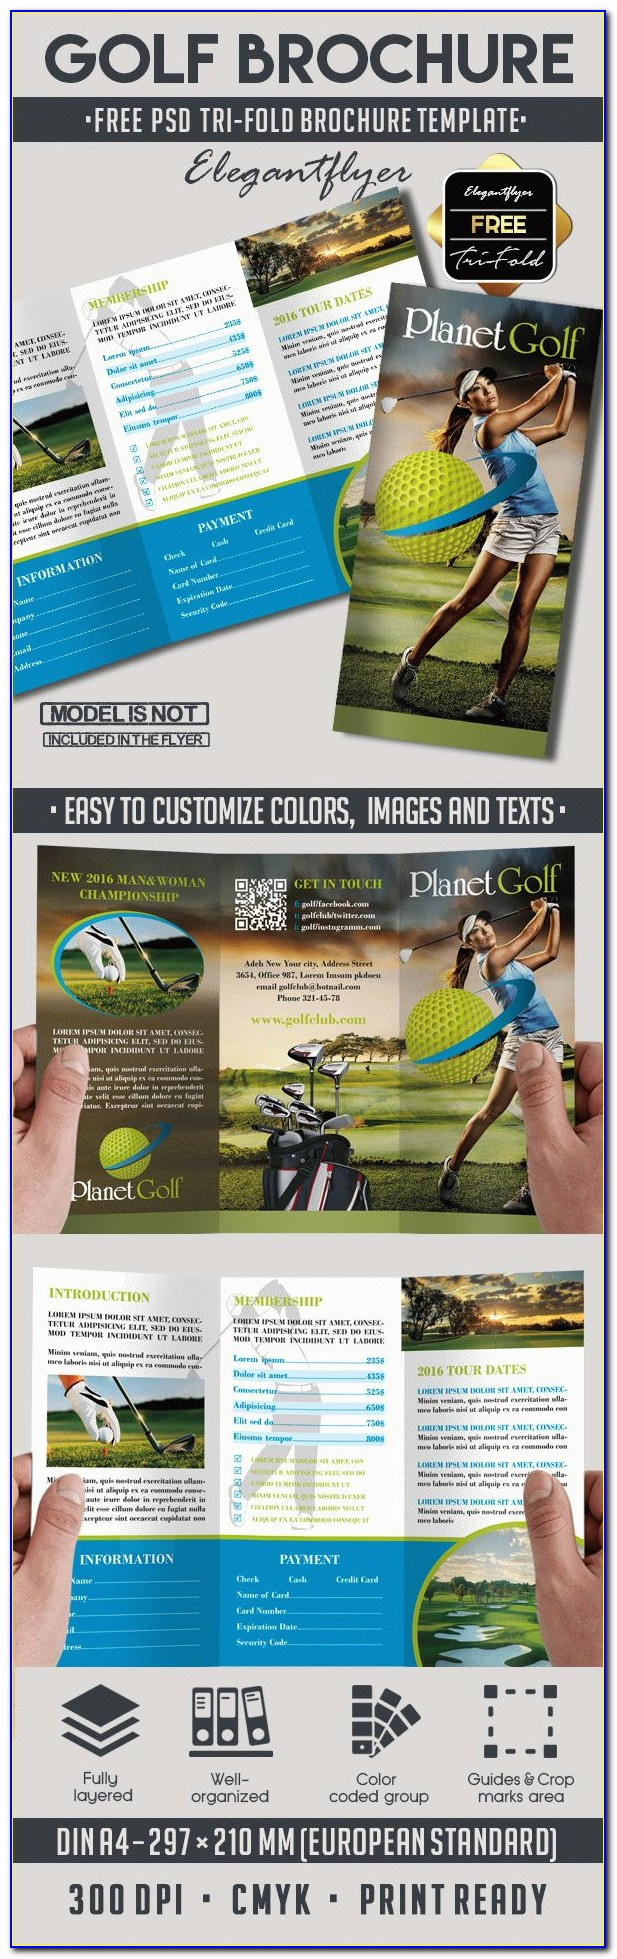 Free Tri Fold Brochure Templates Photoshop